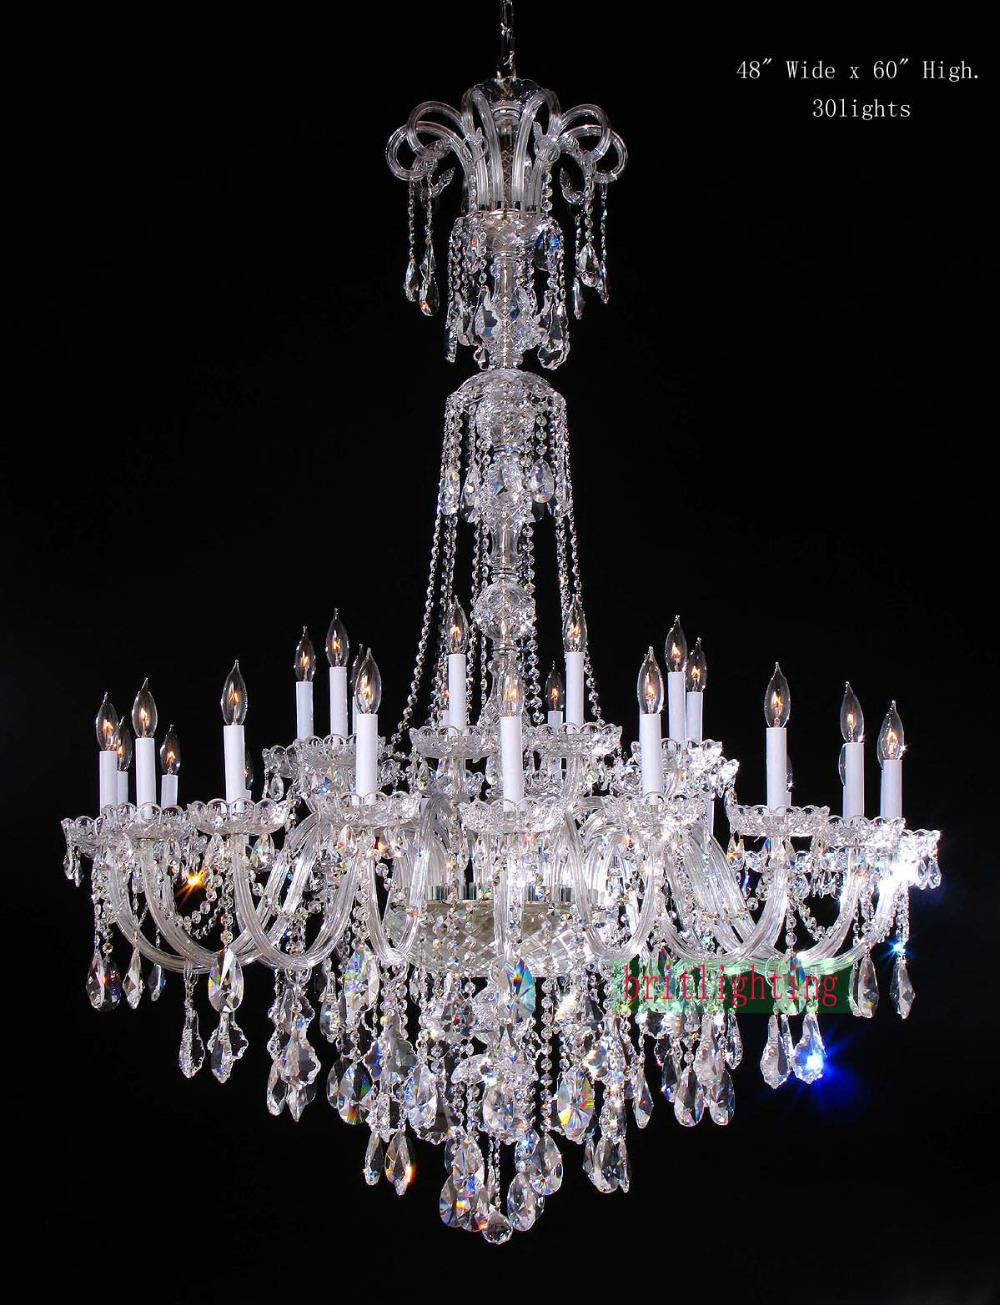 Lamp modern crystal chandeliers 5 star hotel chandelier led crystal lamp modern crystal chandeliers 5 star hotel chandelier led crystal candle chandeliers large elegant crystal chandelier foyer luxury chandeliers crystal arubaitofo Gallery